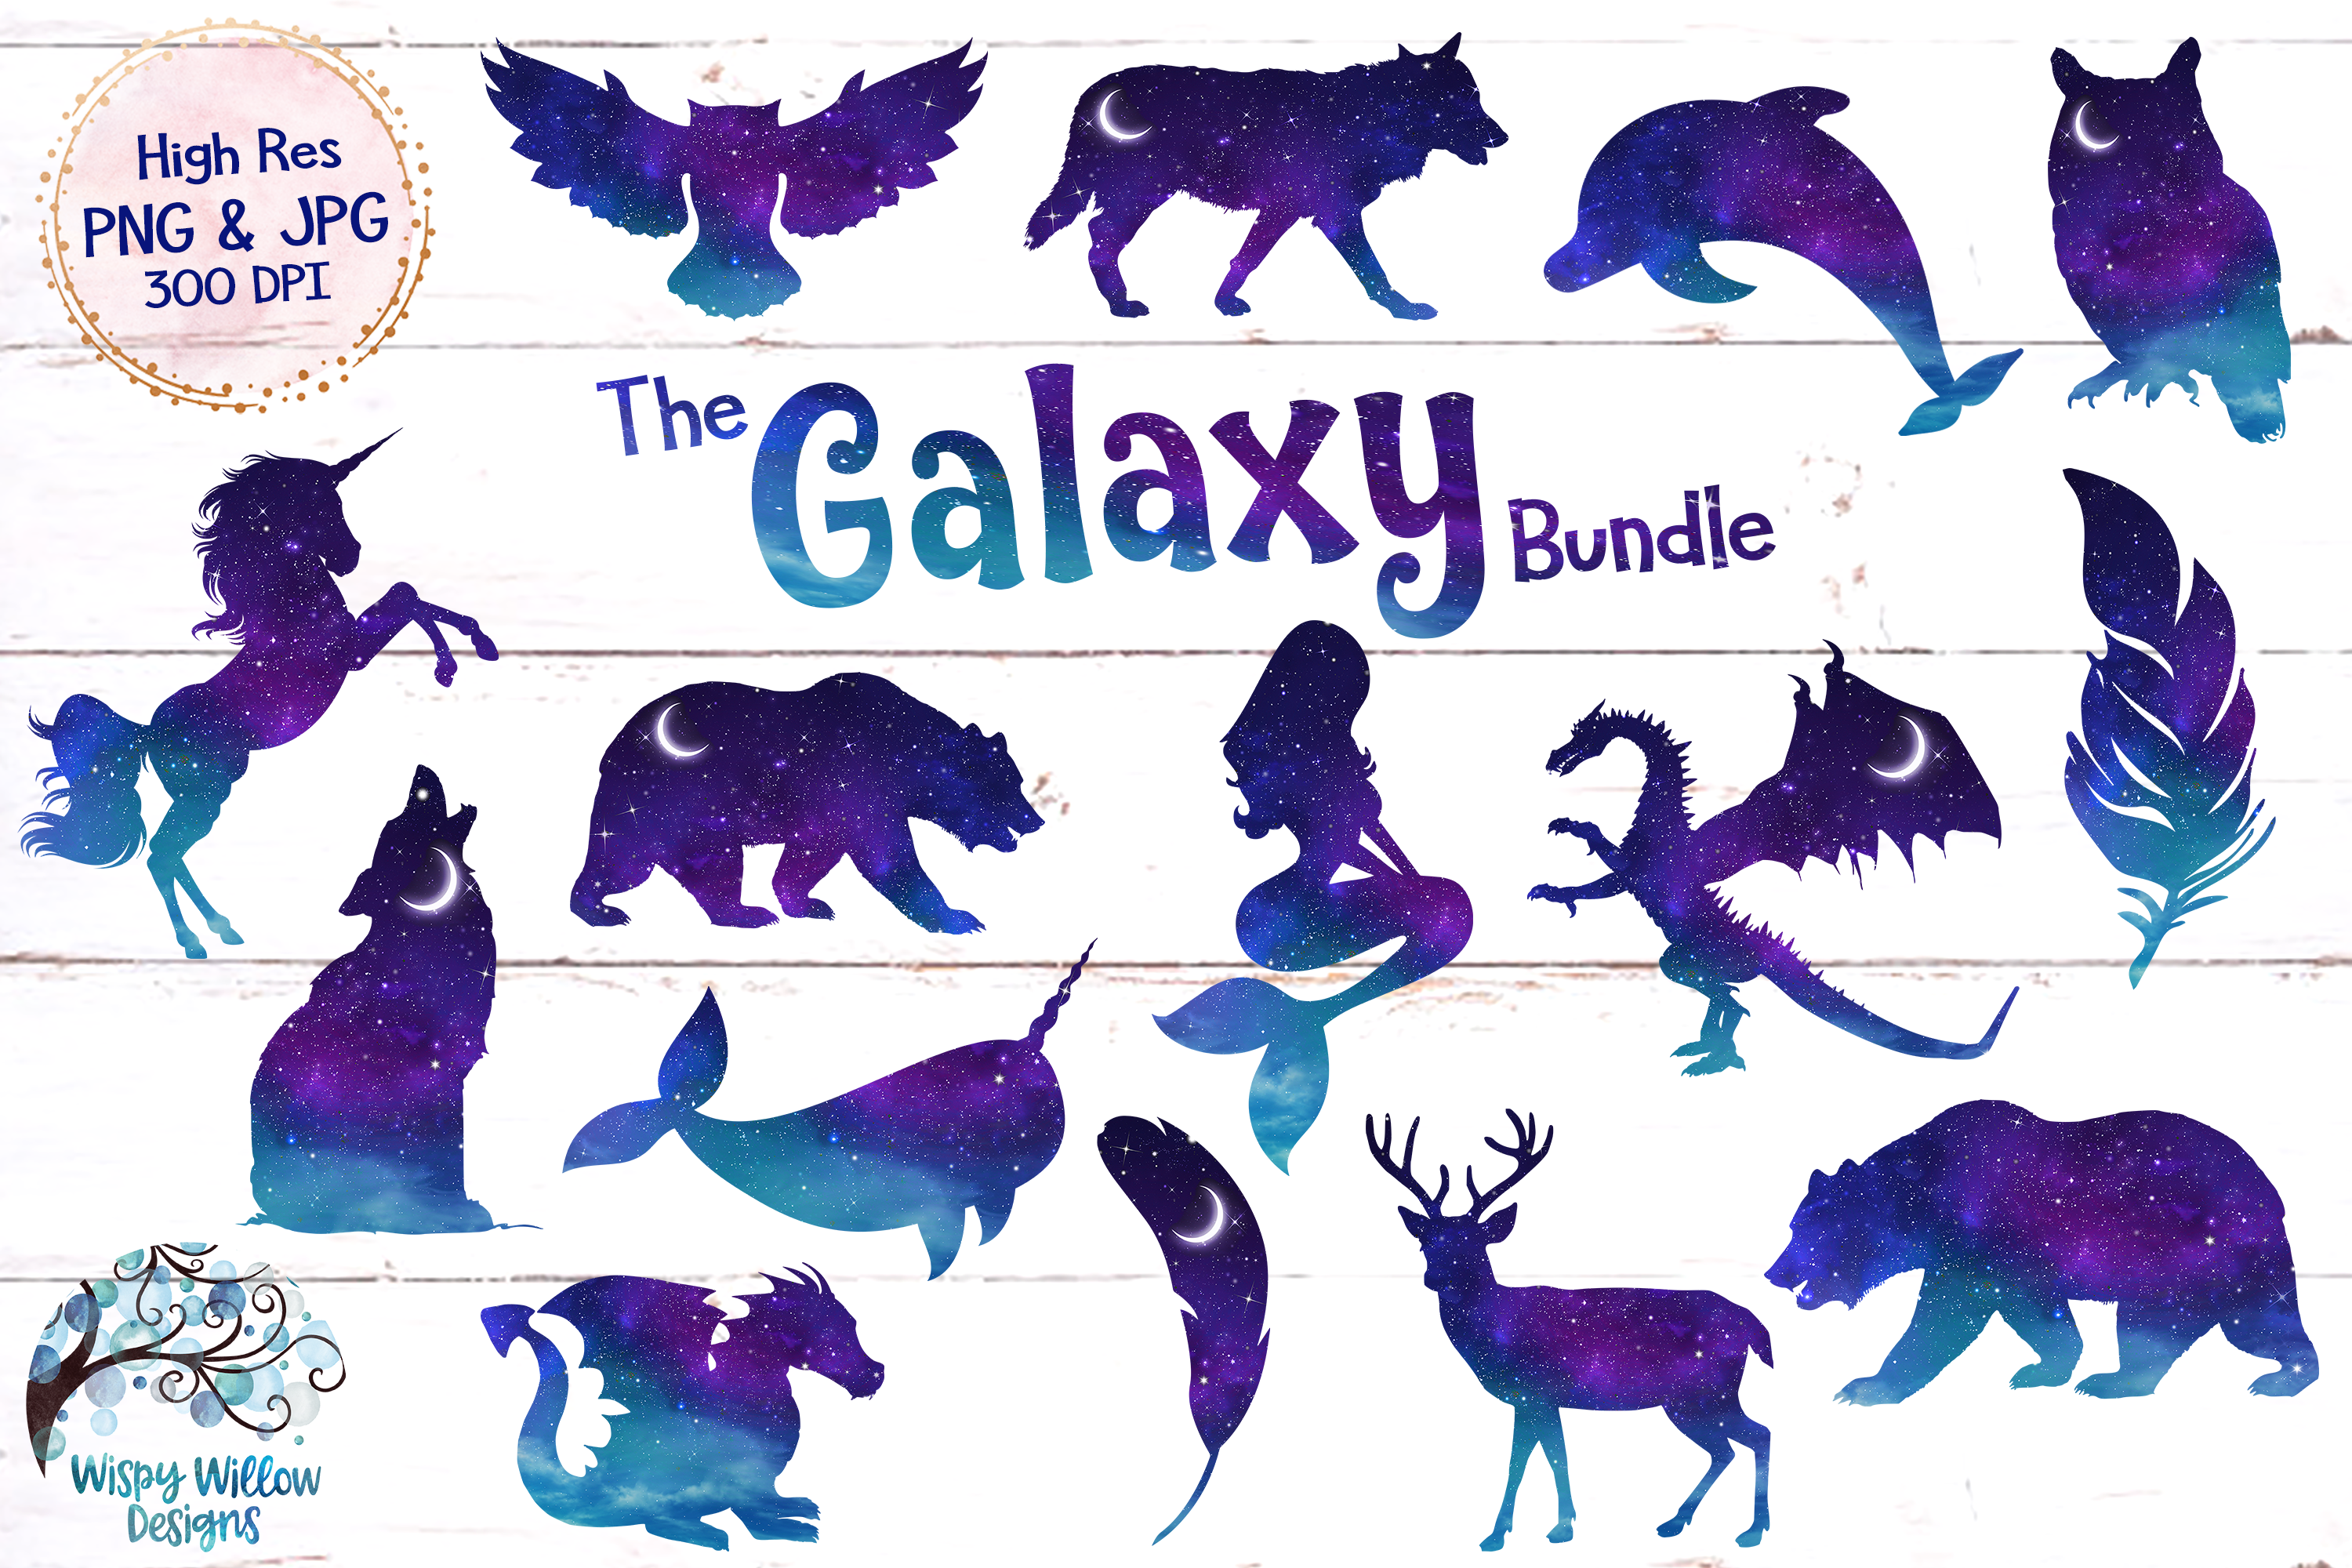 Galaxy clipart amazing art. The bundle png and